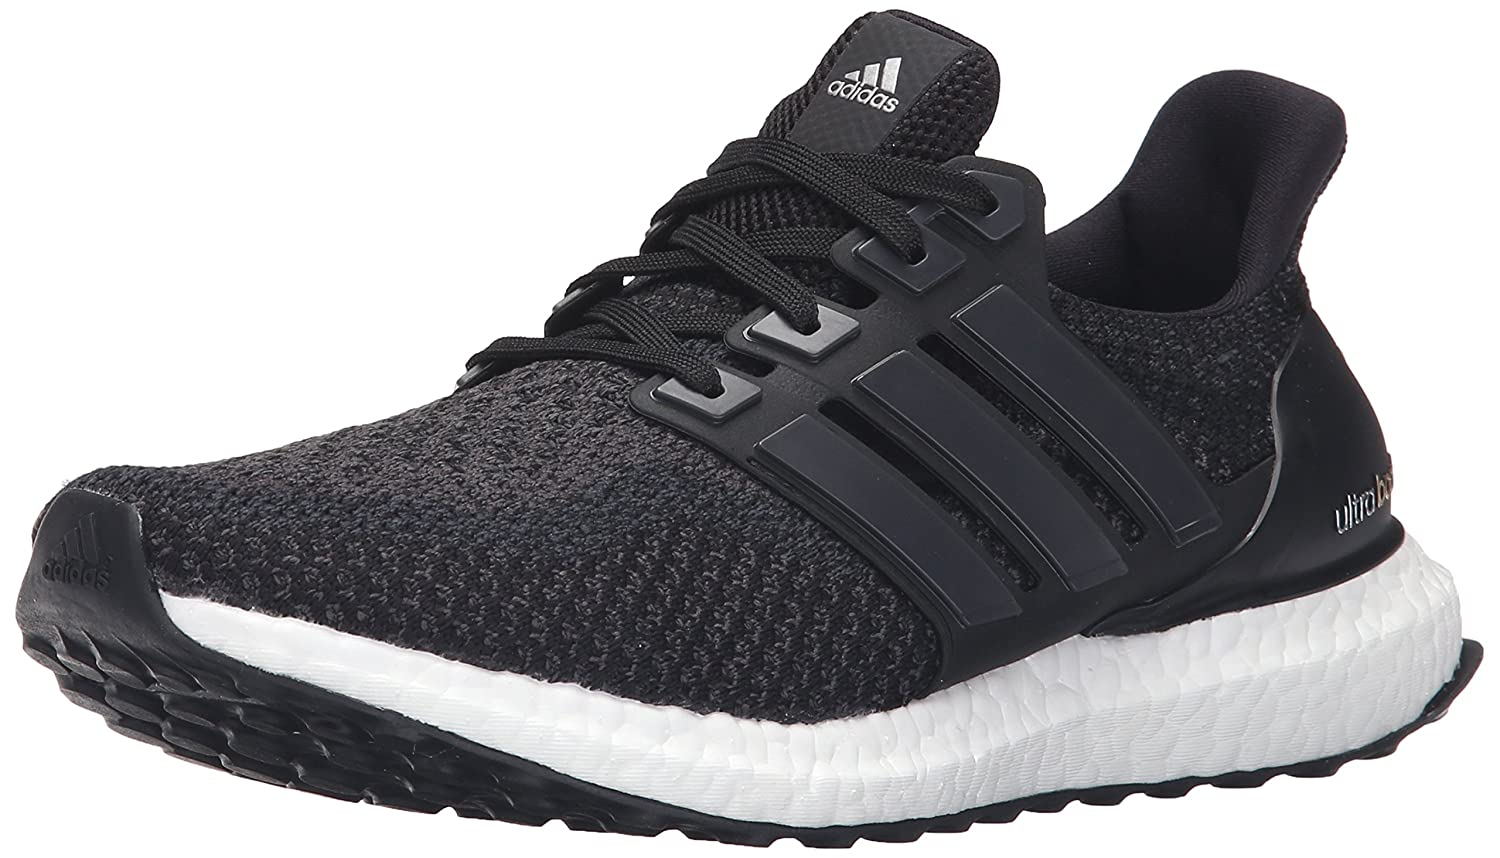 adidas Performance Men's Ultra Boost M Running Shoe B01AYF7EZO 10 D(M) US|Black/Black/Black